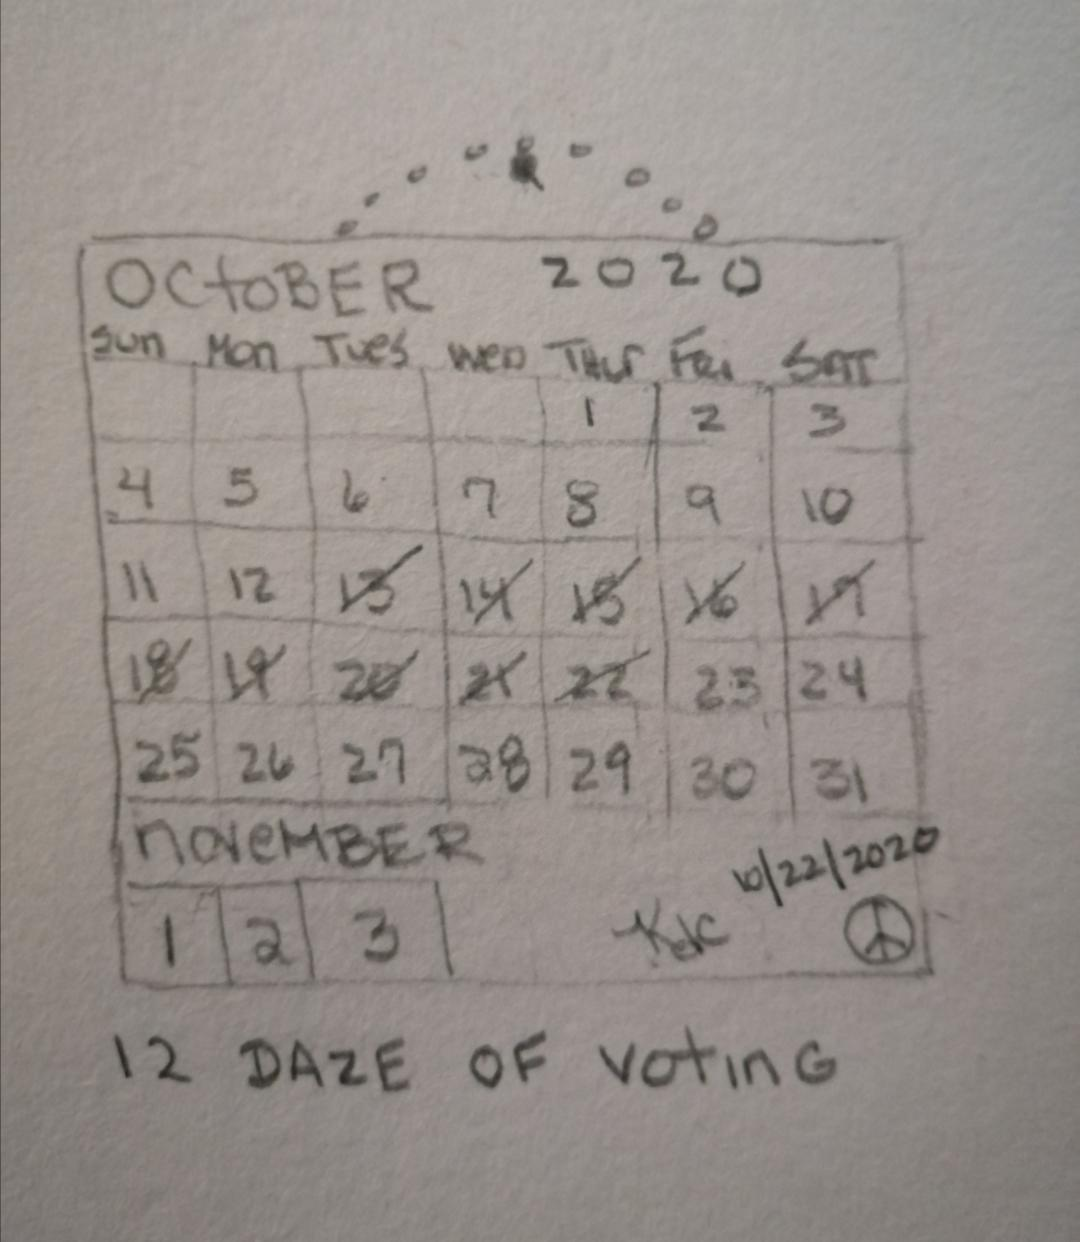 12 Days of Voting (Sung to the tune of The 12 Days Of Christmas) ~ by Katrina Curtiss 10/22/2020